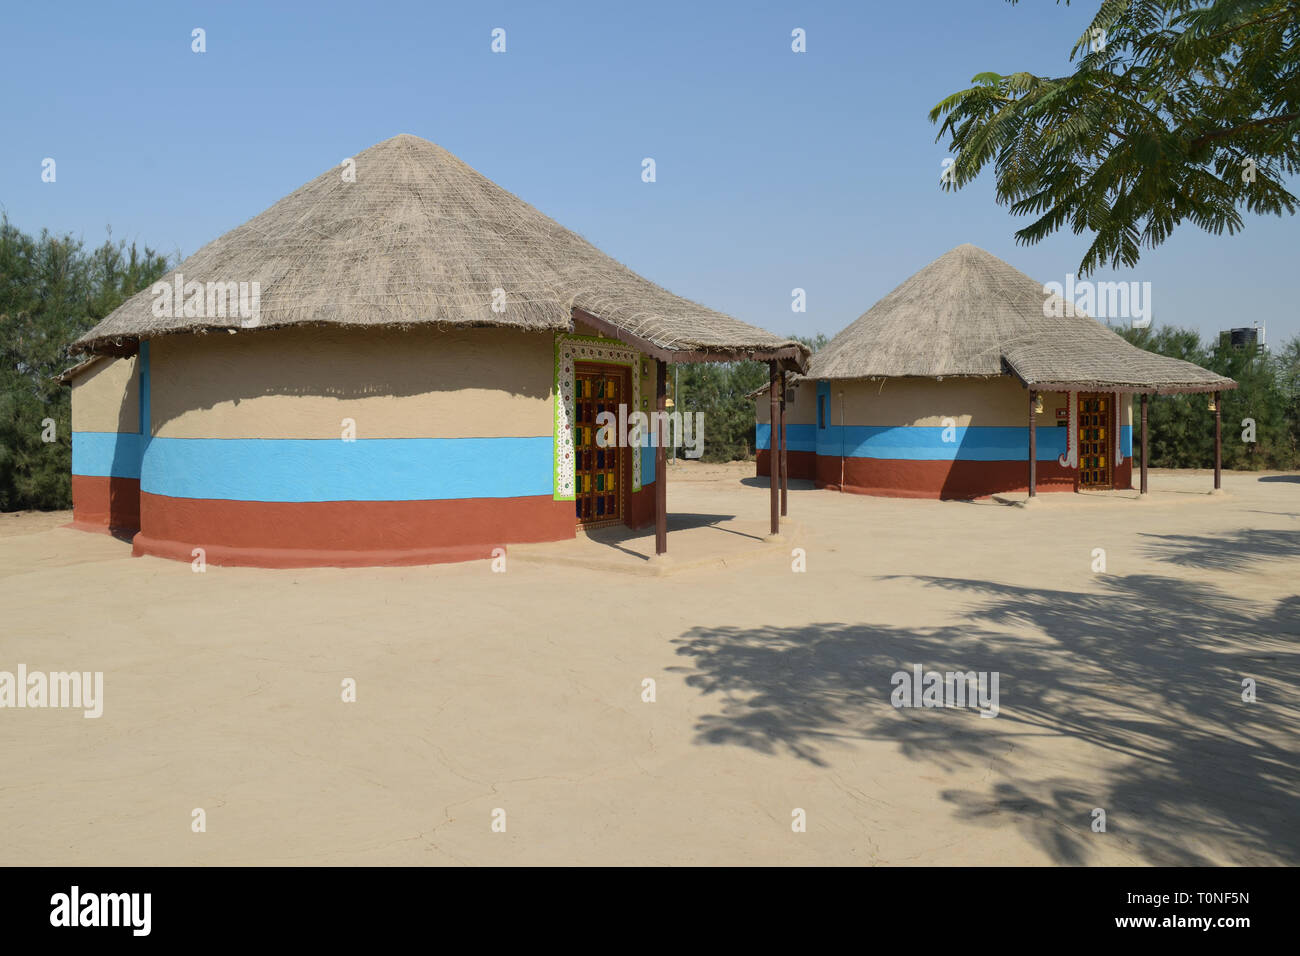 Bunga-Cylindrical mud house with thatched roof in Kutch,Gujarat, India - Stock Image